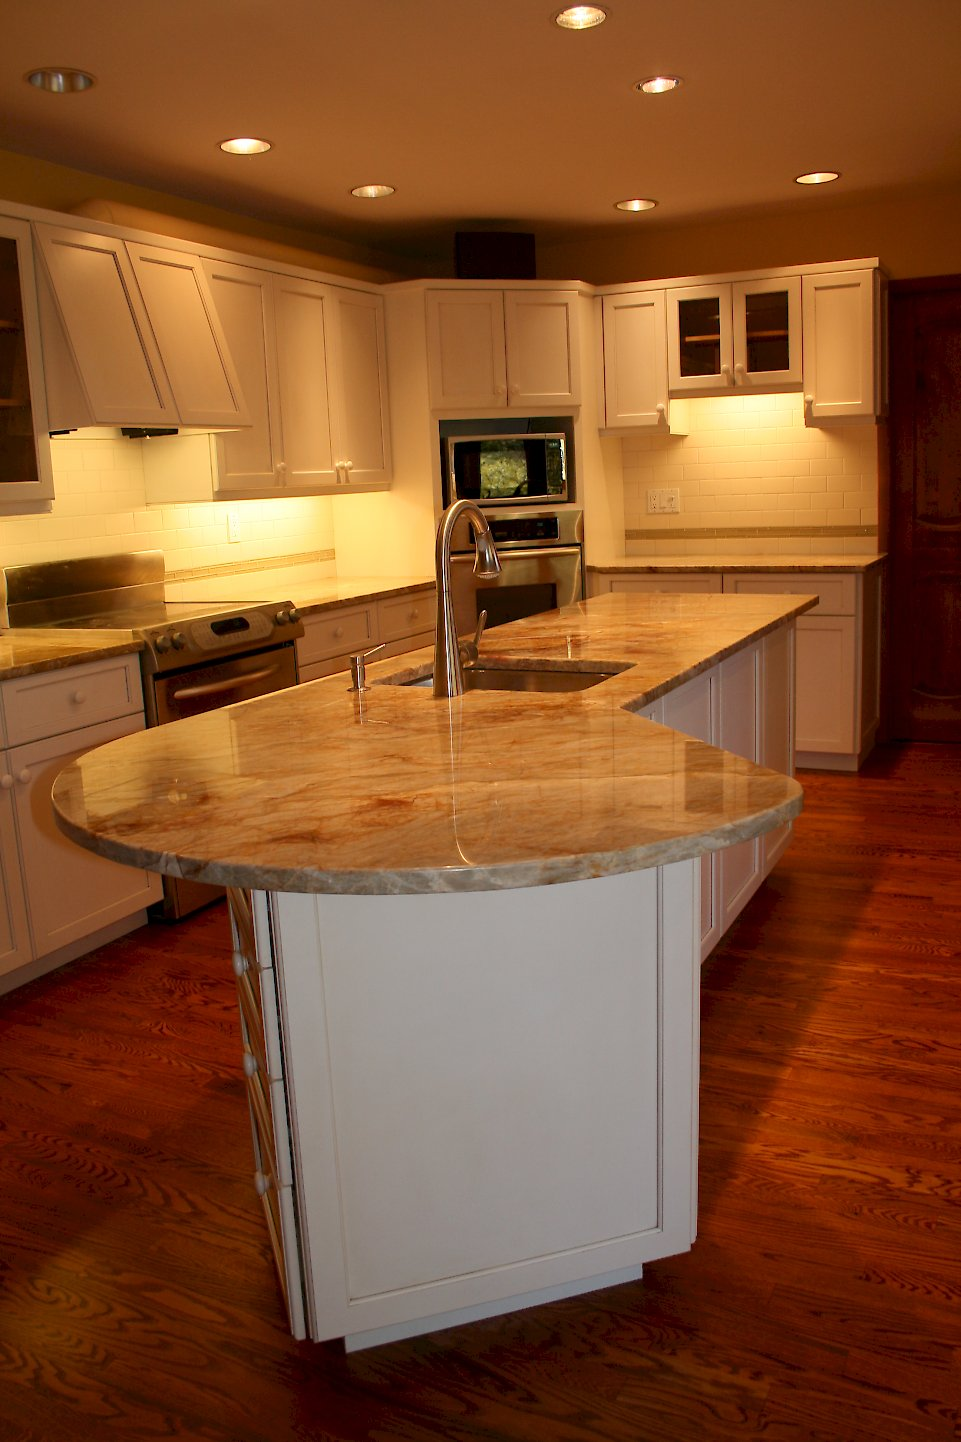 Rounded counter-top at the end of the island.